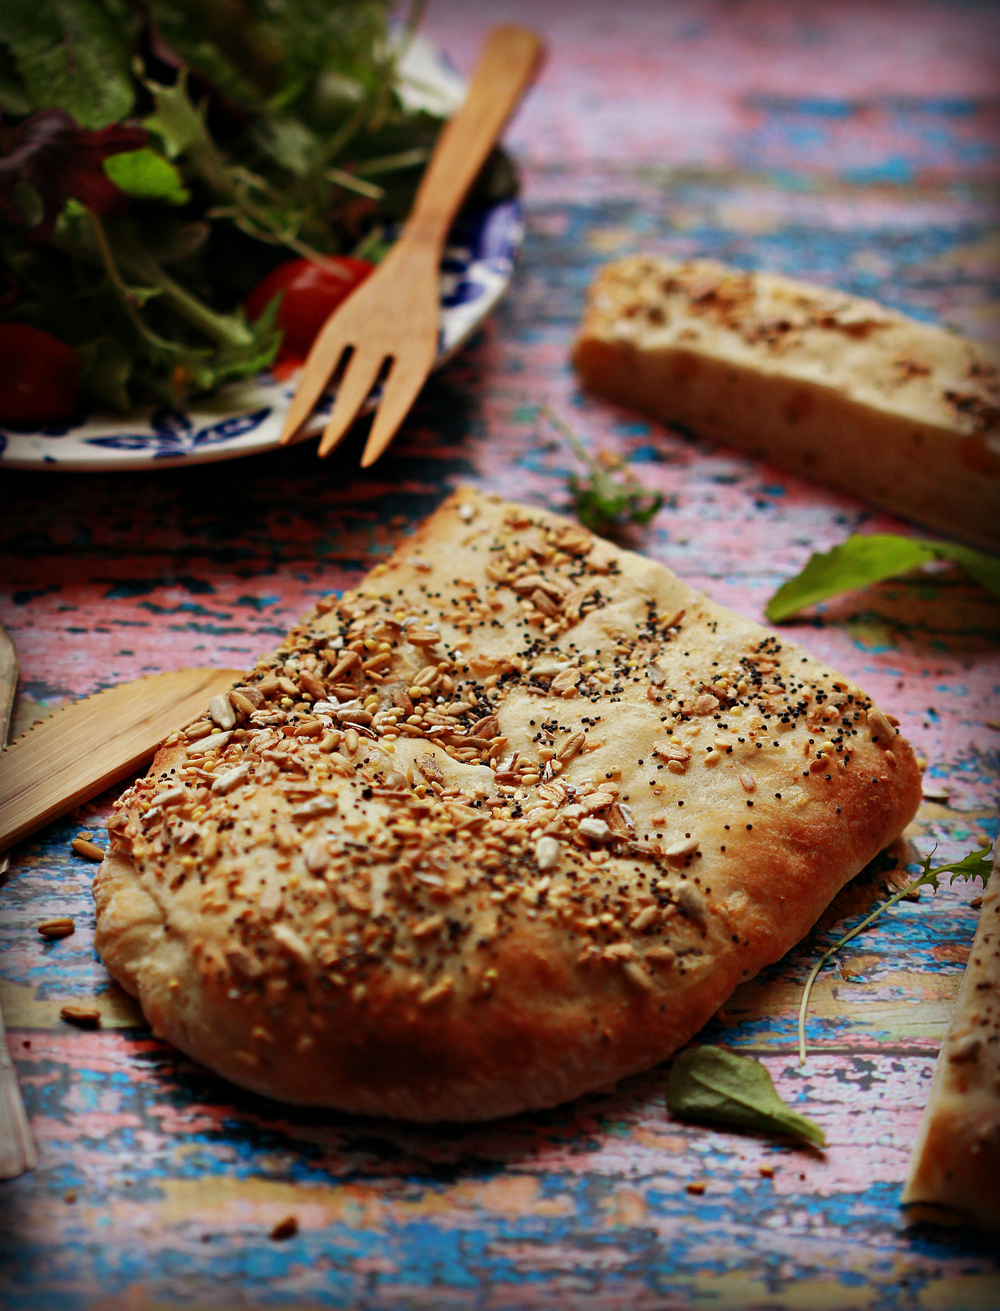 Iranian Flatbread with Harvest Grains